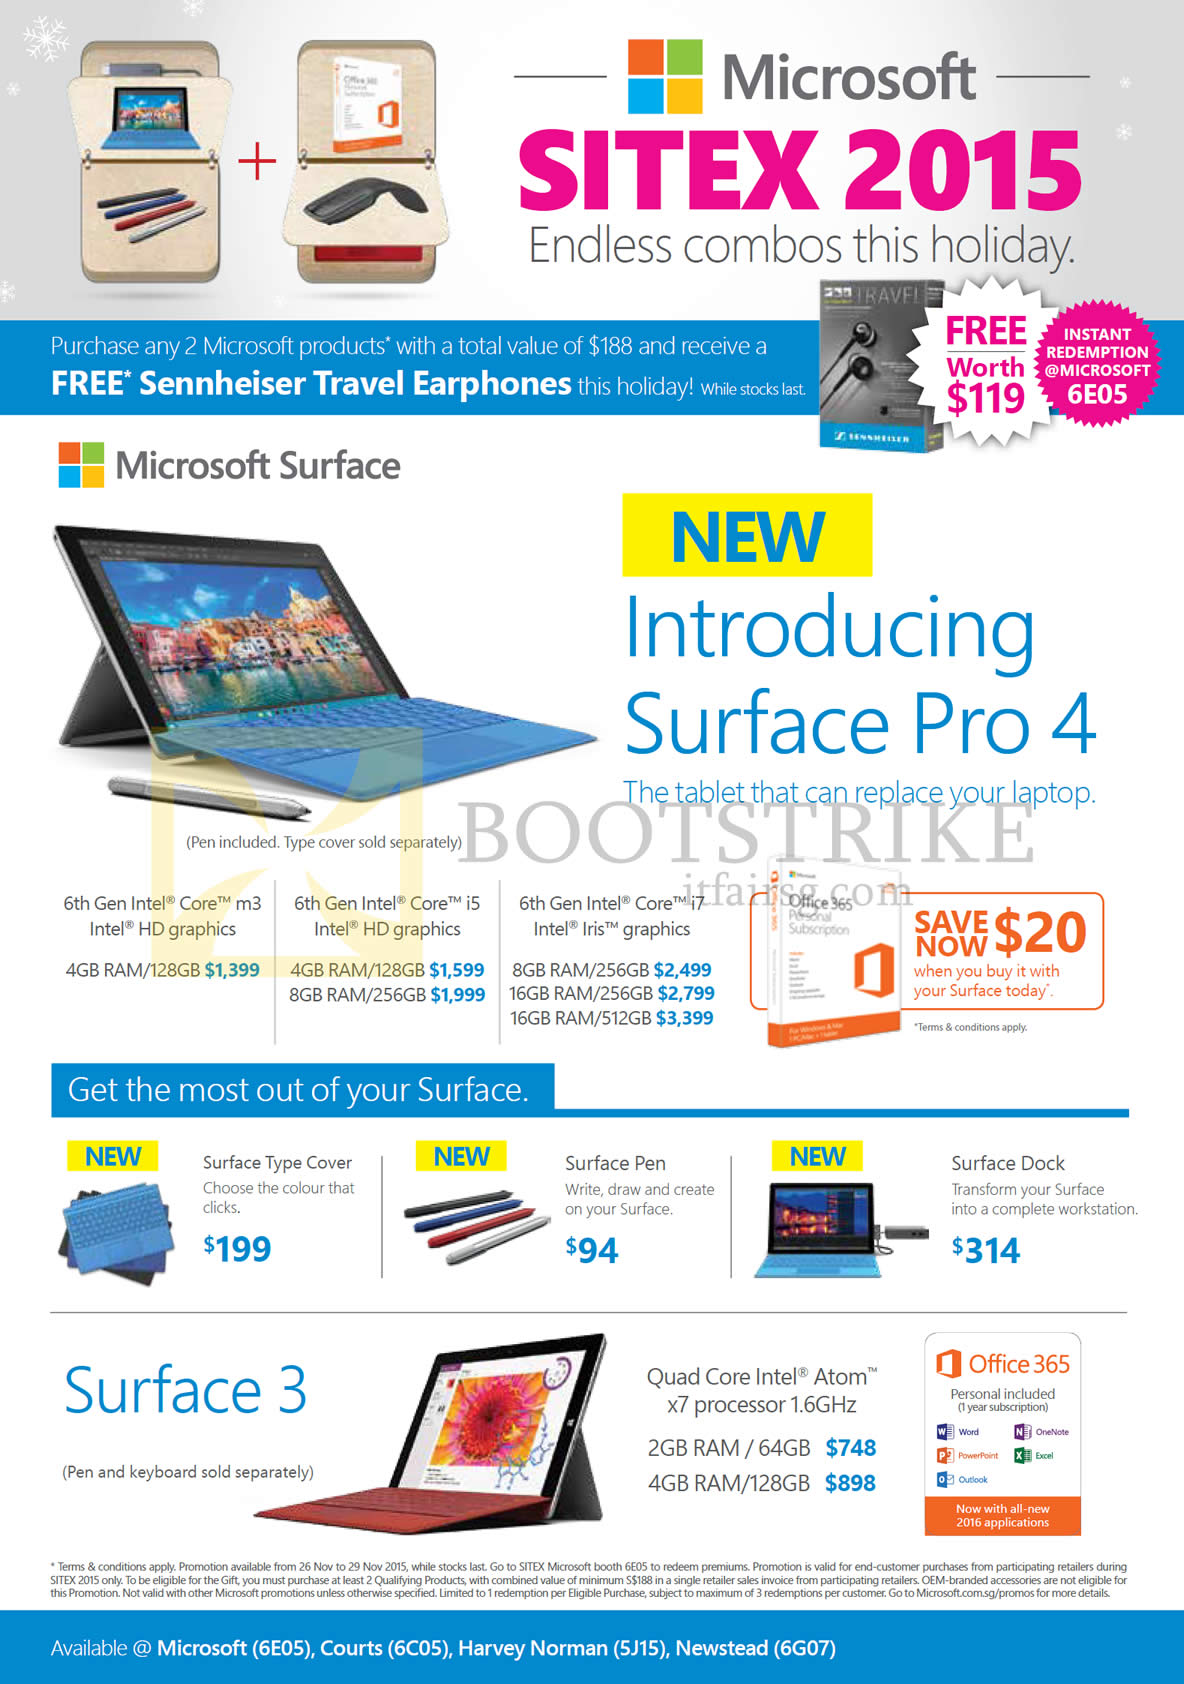 SITEX 2015 price list image brochure of Microsoft Tablets Surface Pro 4, Surface 3